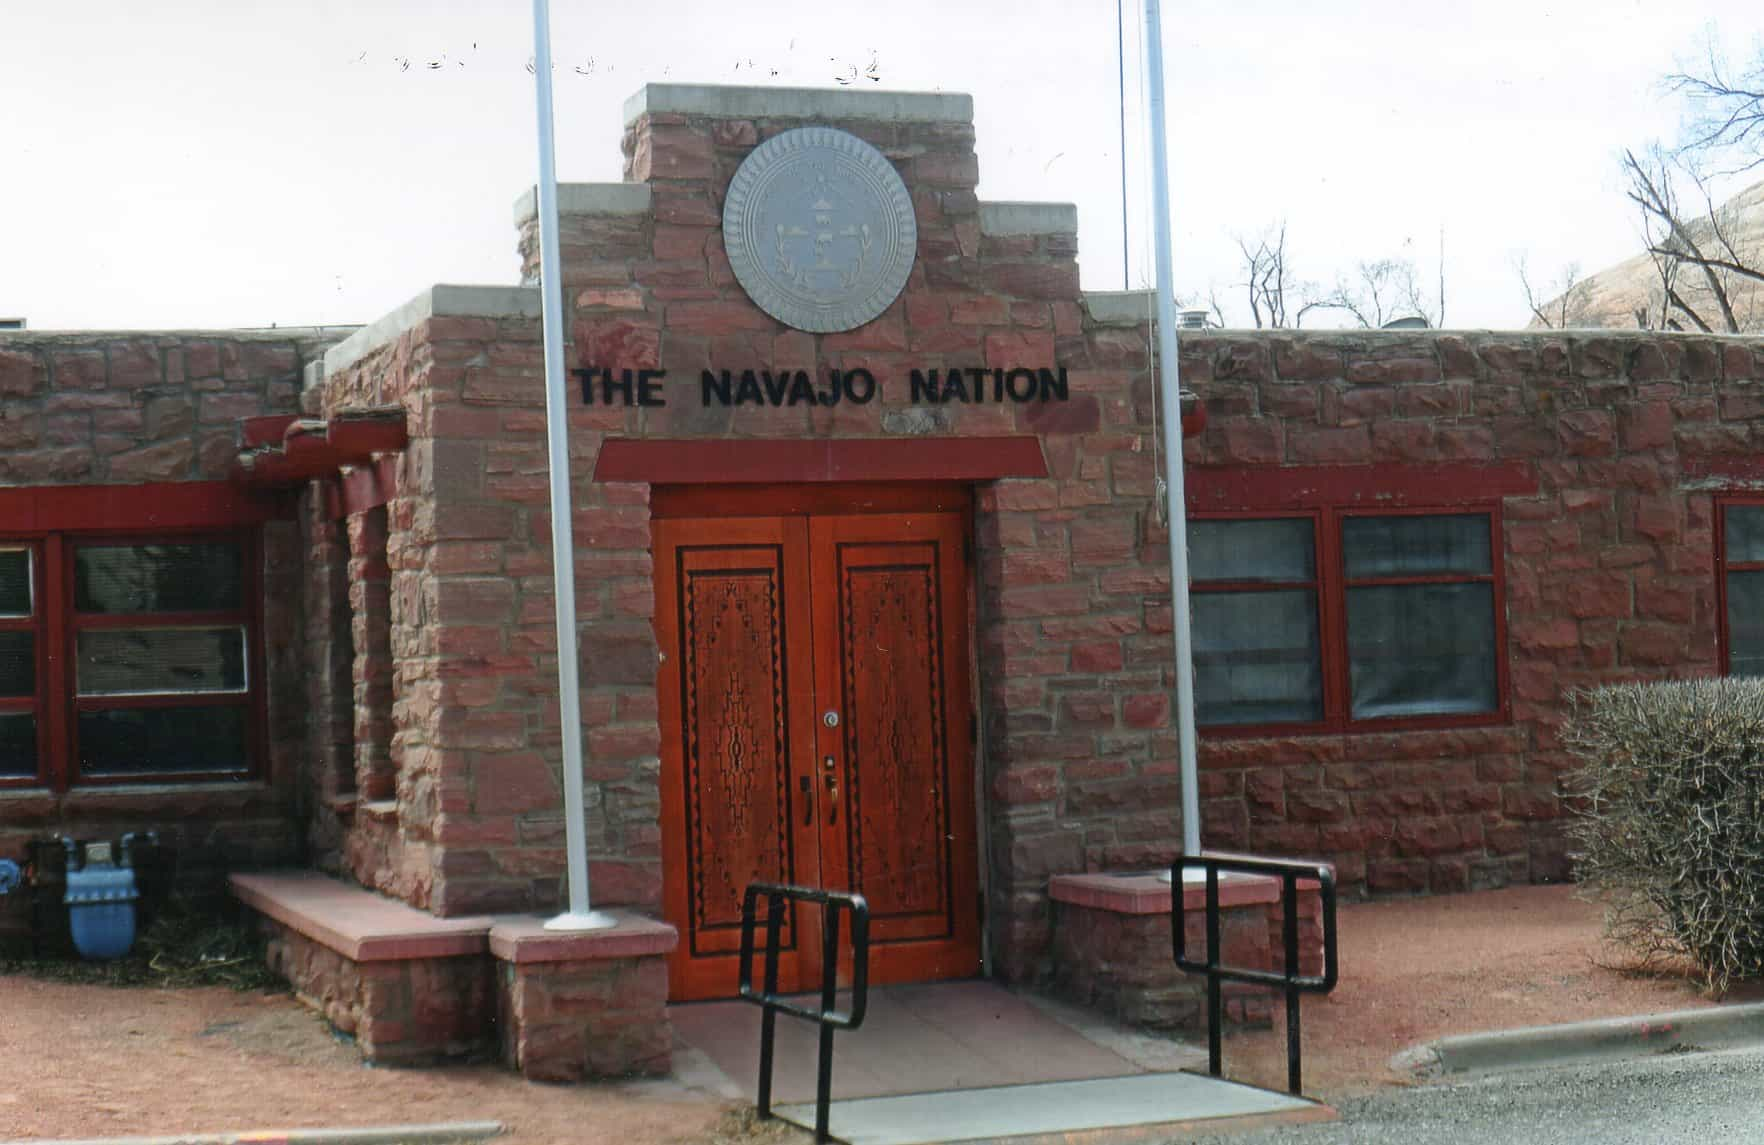 Navajo nation offices